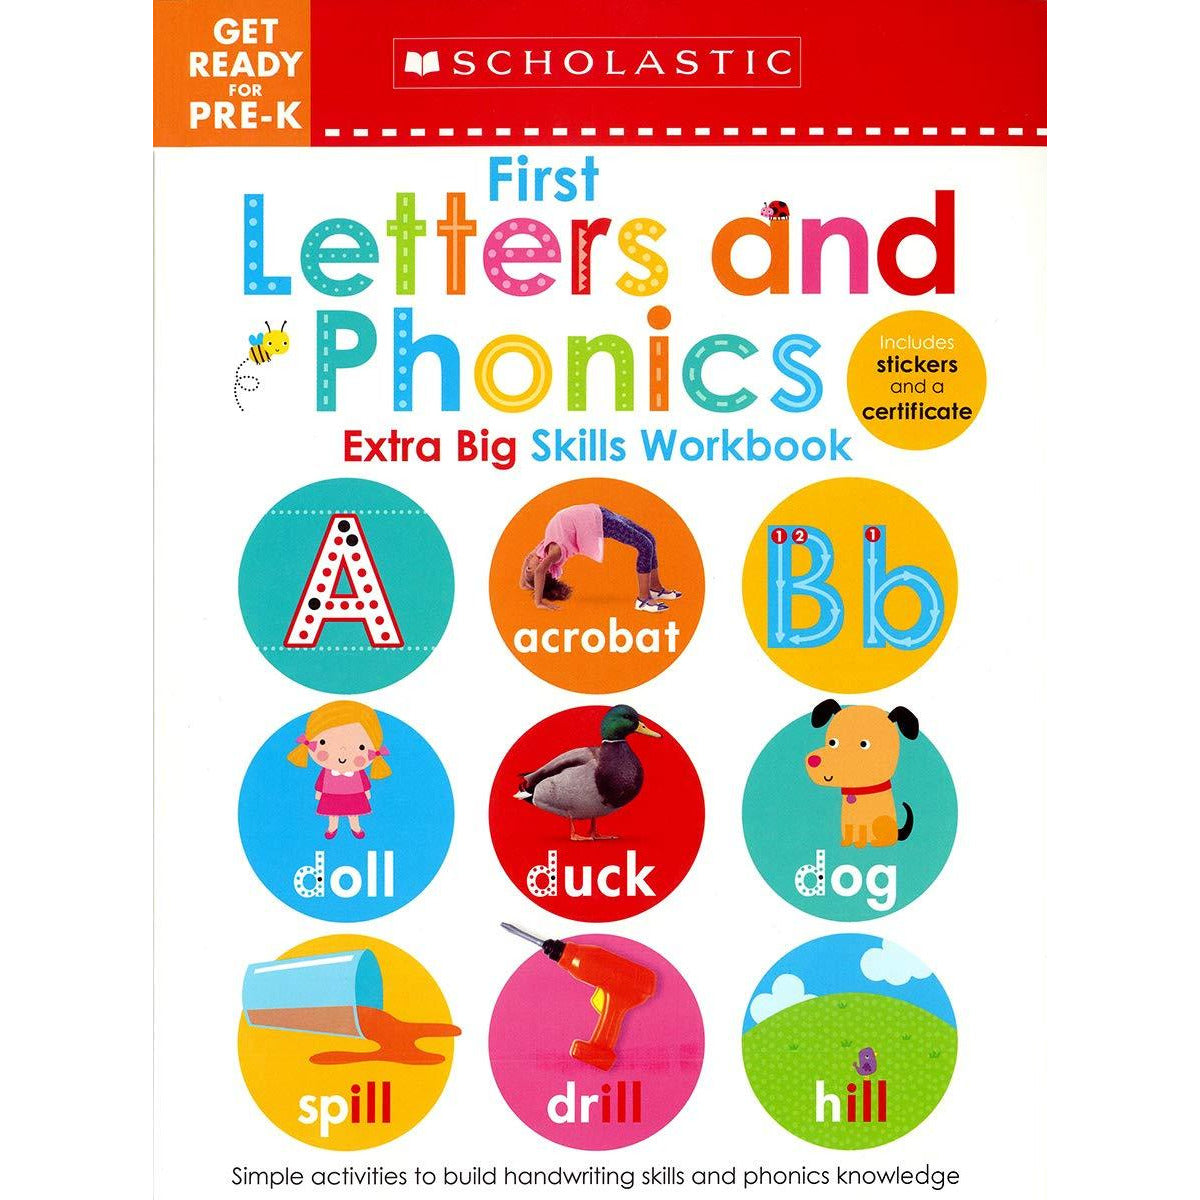 Scholastic Workbook Extra Big Skills: Get Ready for Pre-K: First Letters & Phonics canada ontario